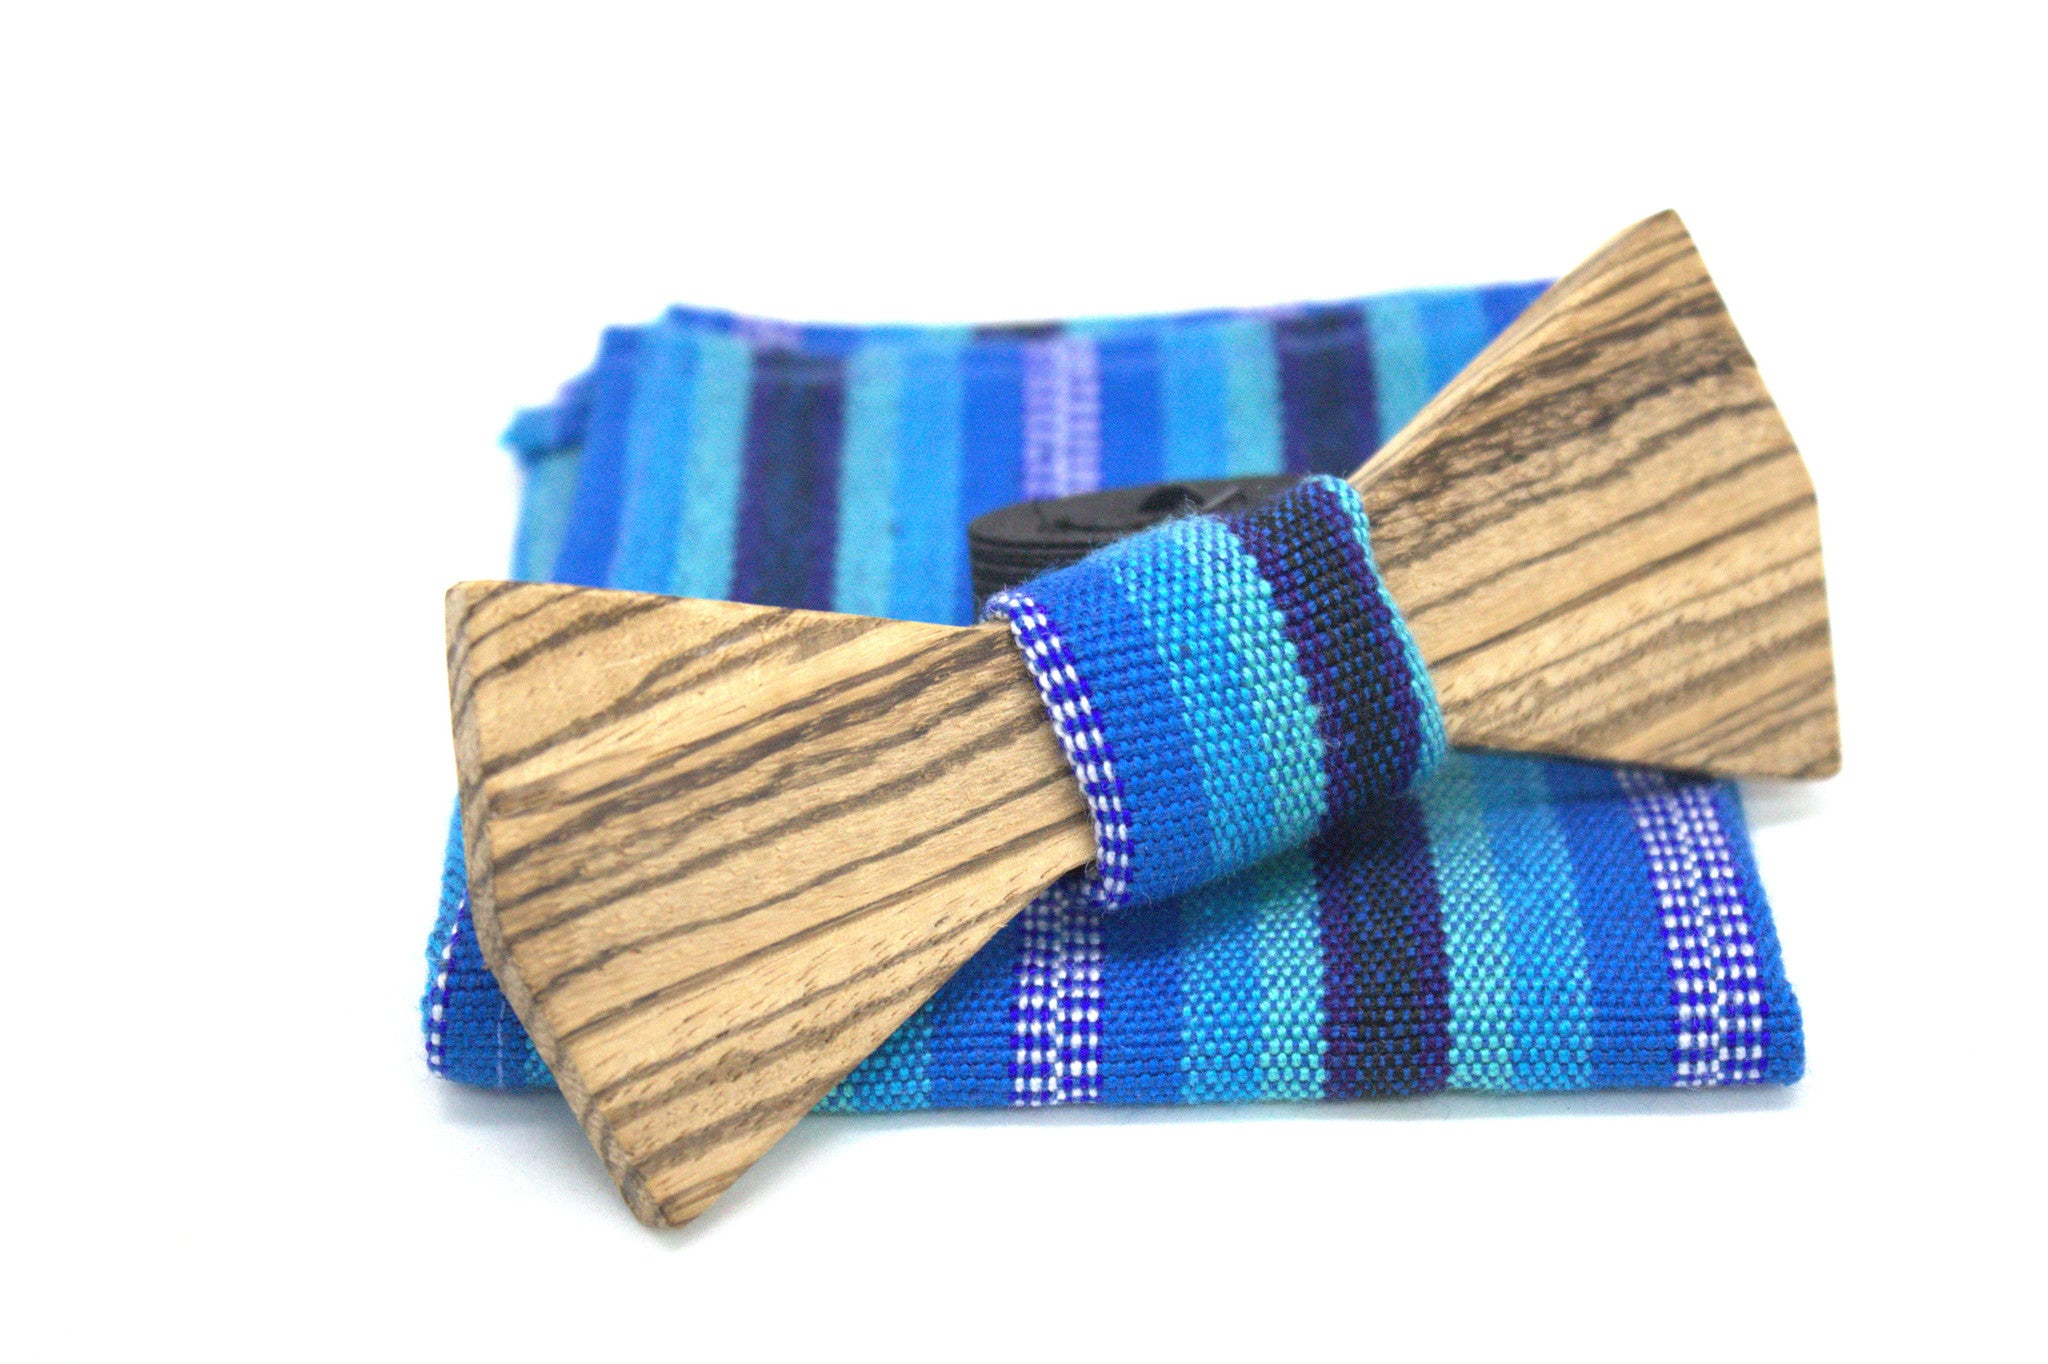 The Xaman Roots Wooden Bow-Tie